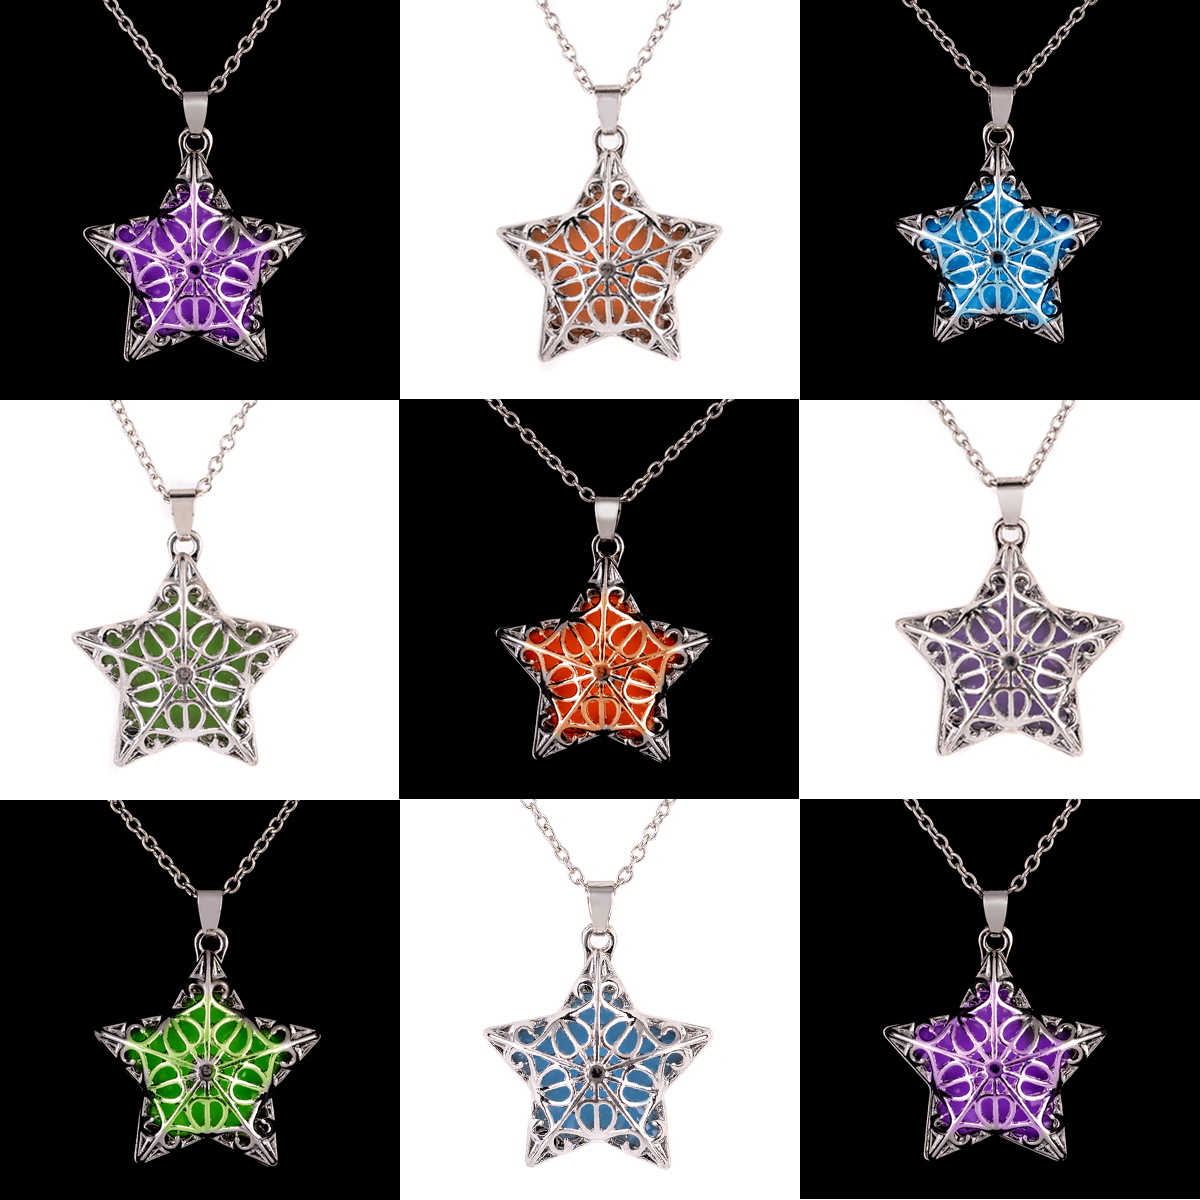 Glow In the Dark Necklace Silver Plated Luminous Stone Loket Hollow Star Steampunk Choker Statement Pendant